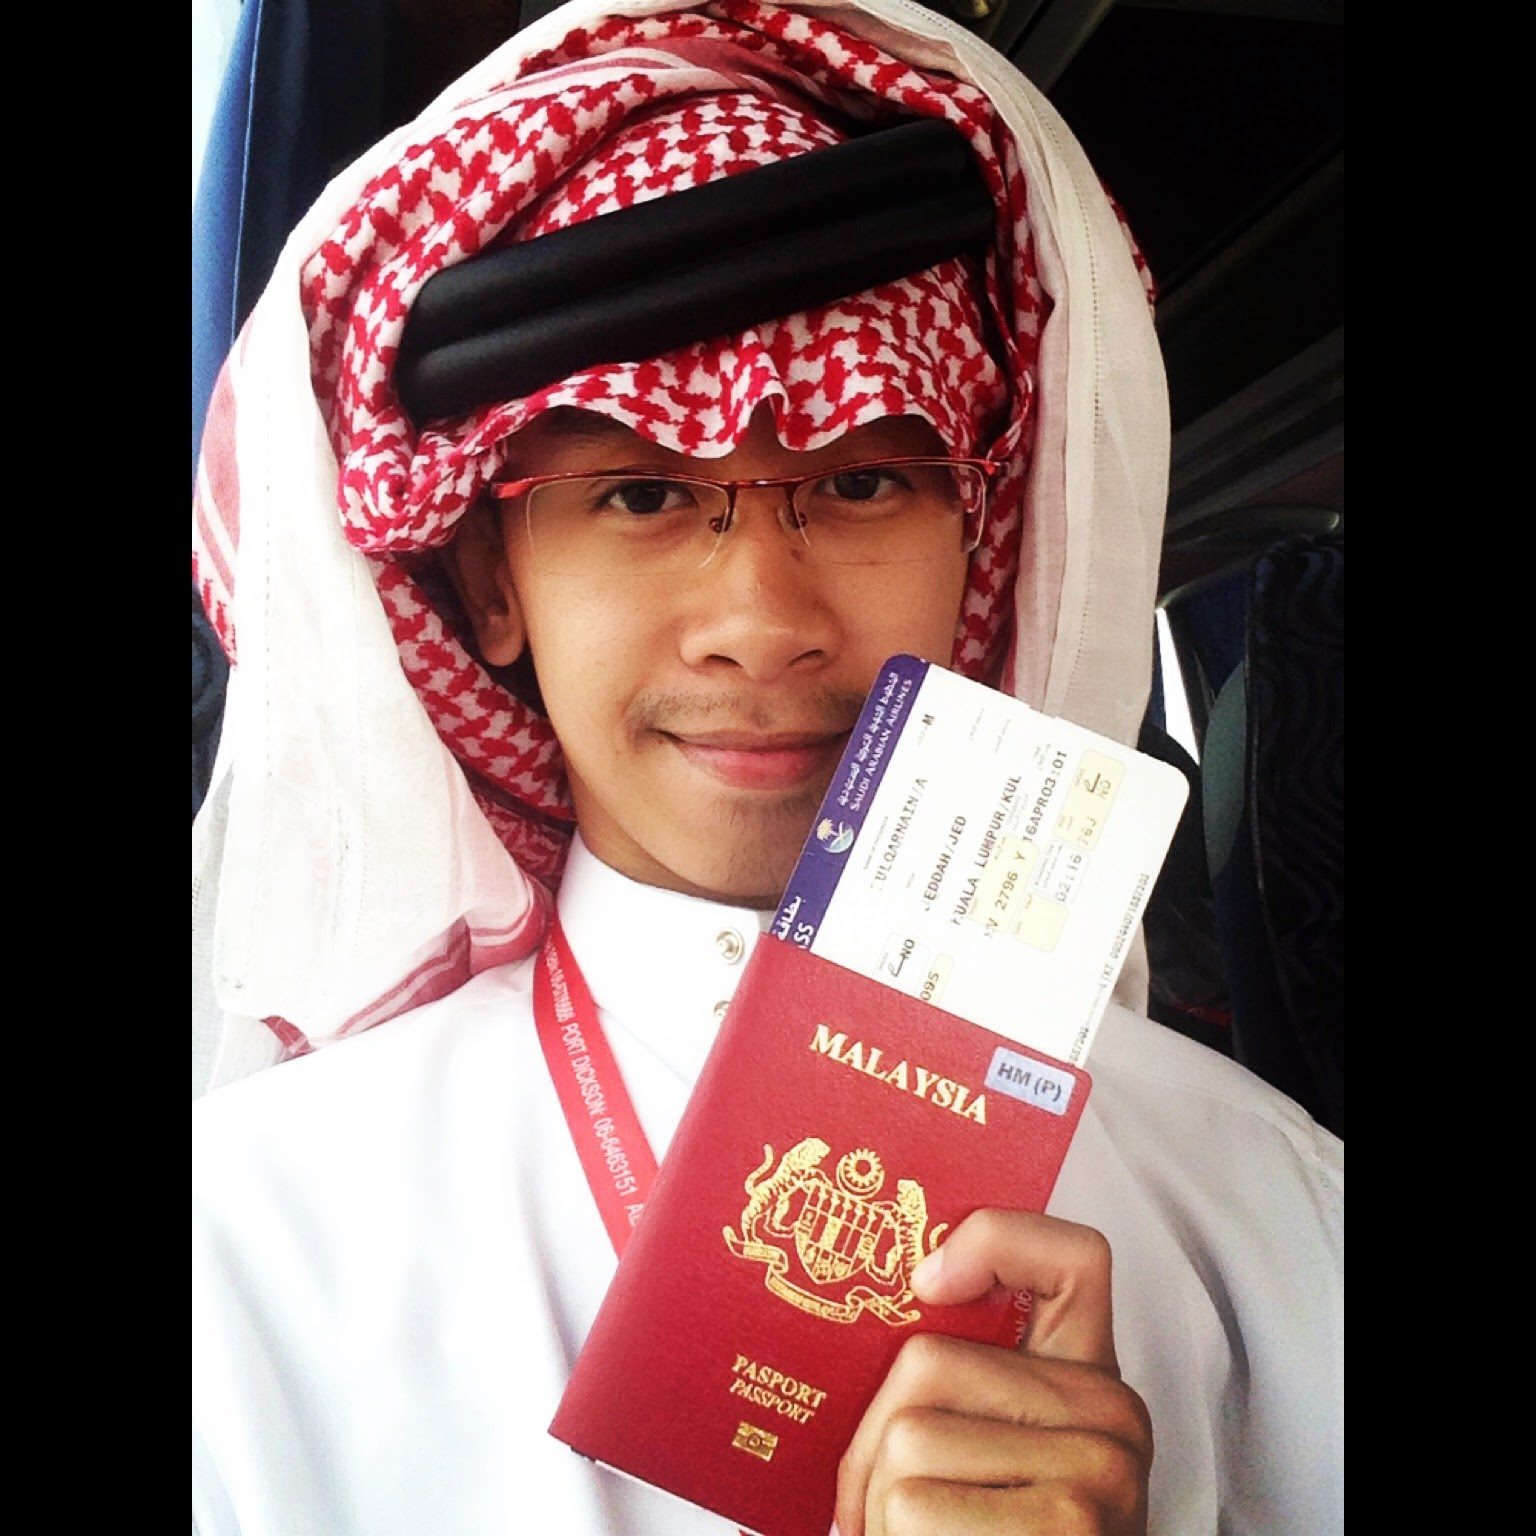 UMRAH HISHAM AL HAJ APRIL MEDINA